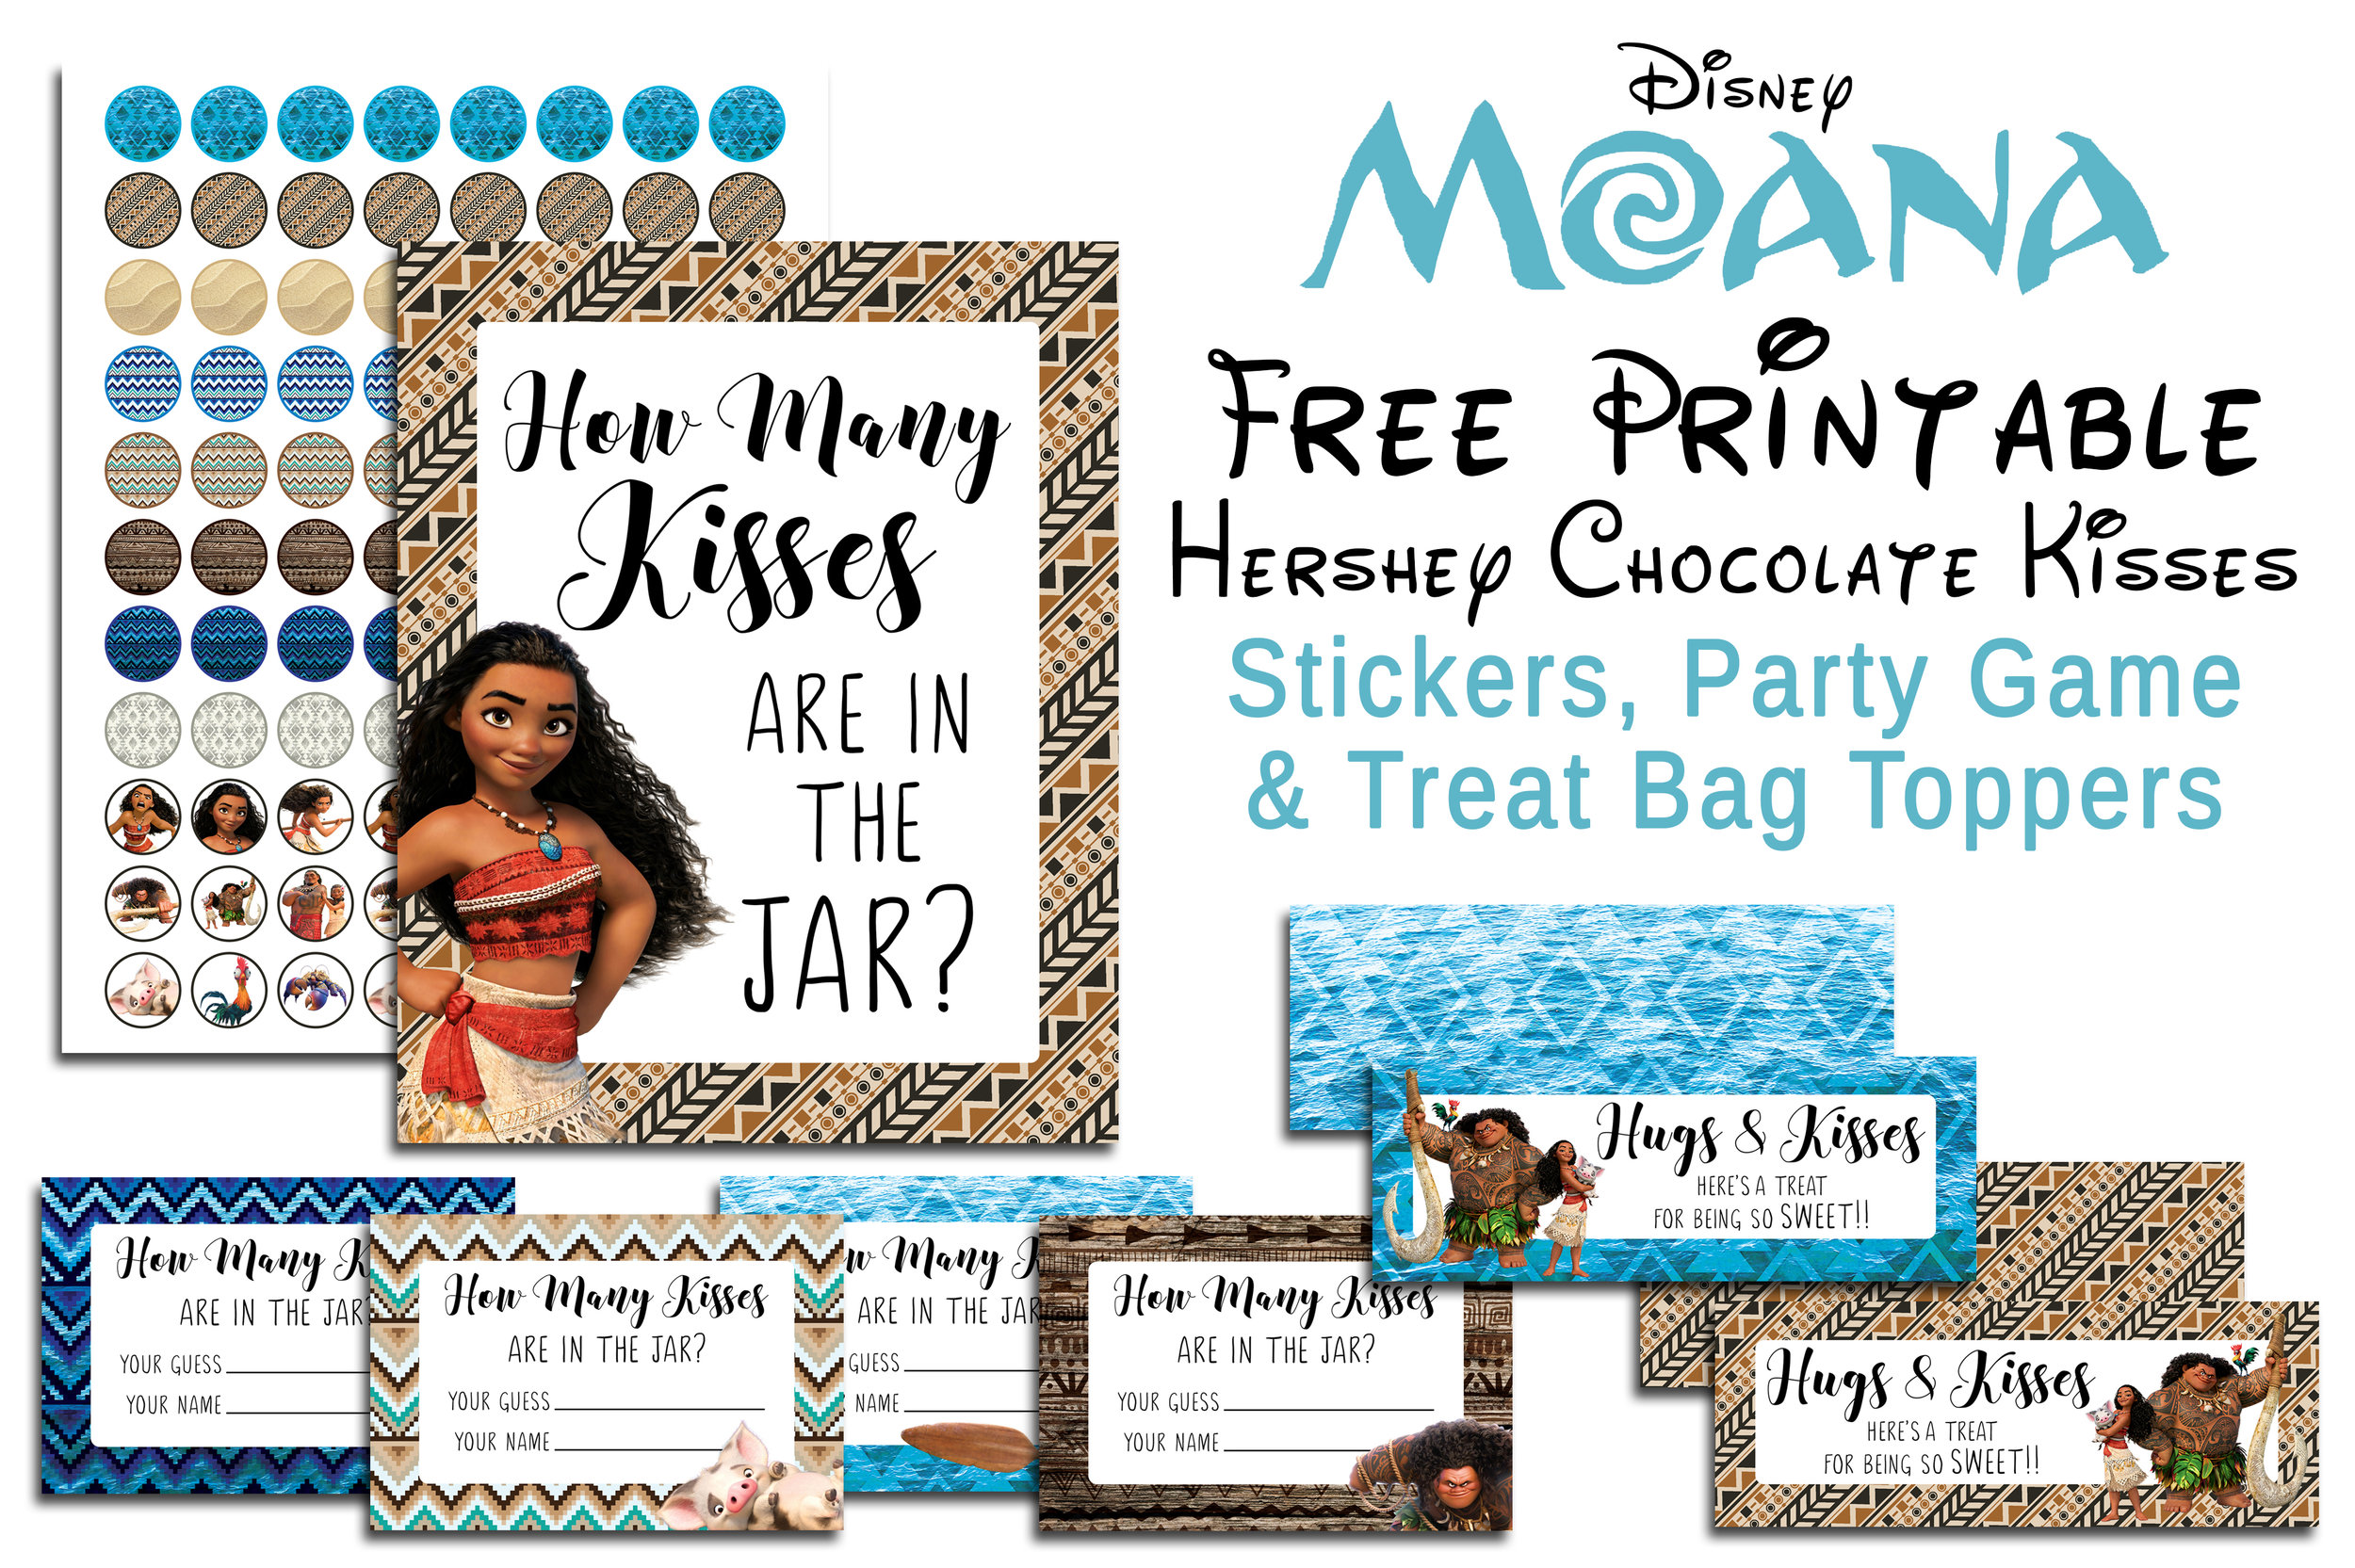 Disney Moana Free Printable Hershey Kiss Stickers Treat Bag Toppers And Party Game Best Toys For Kids